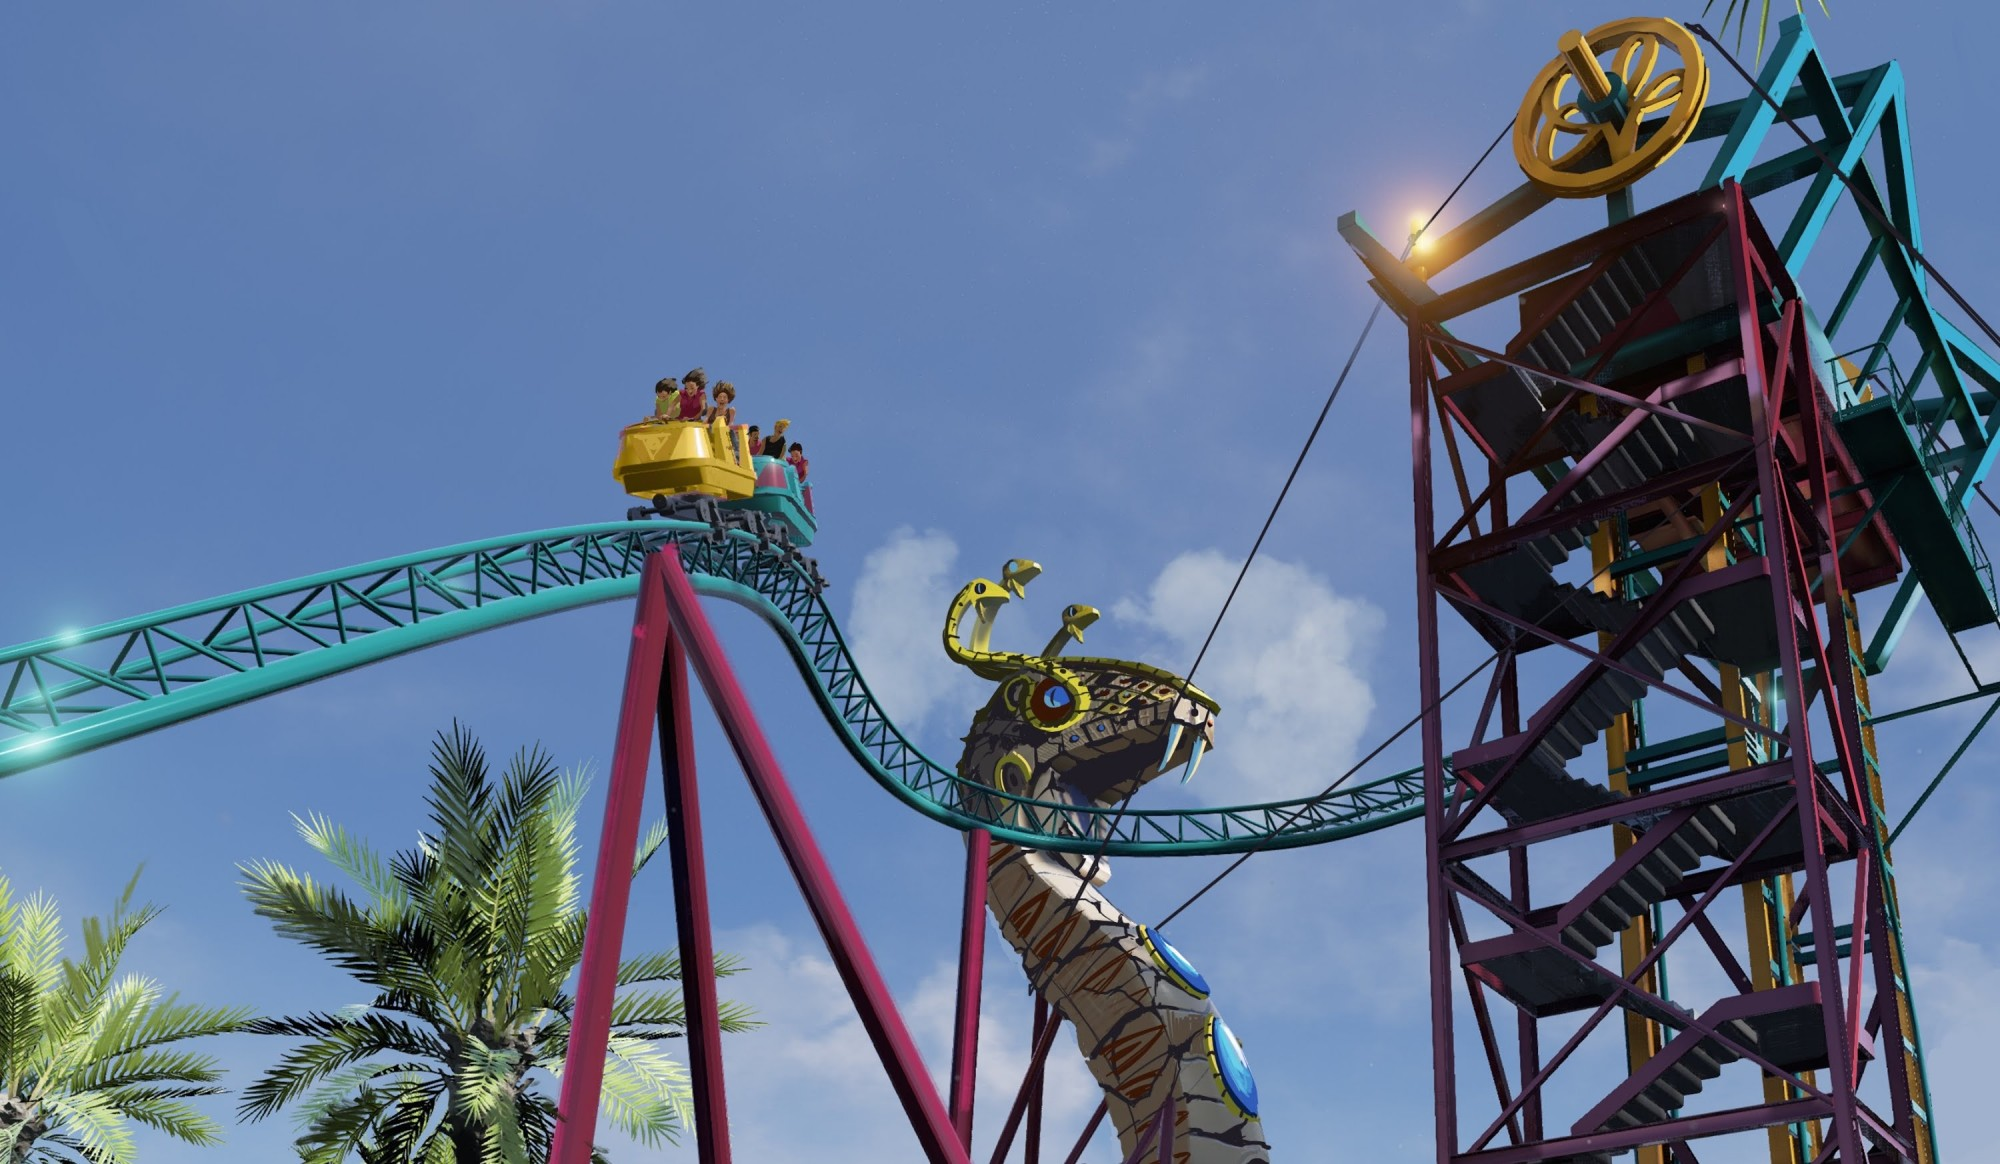 Cobra 39 S Curse To Feature Live Snakes At Busch Gardens